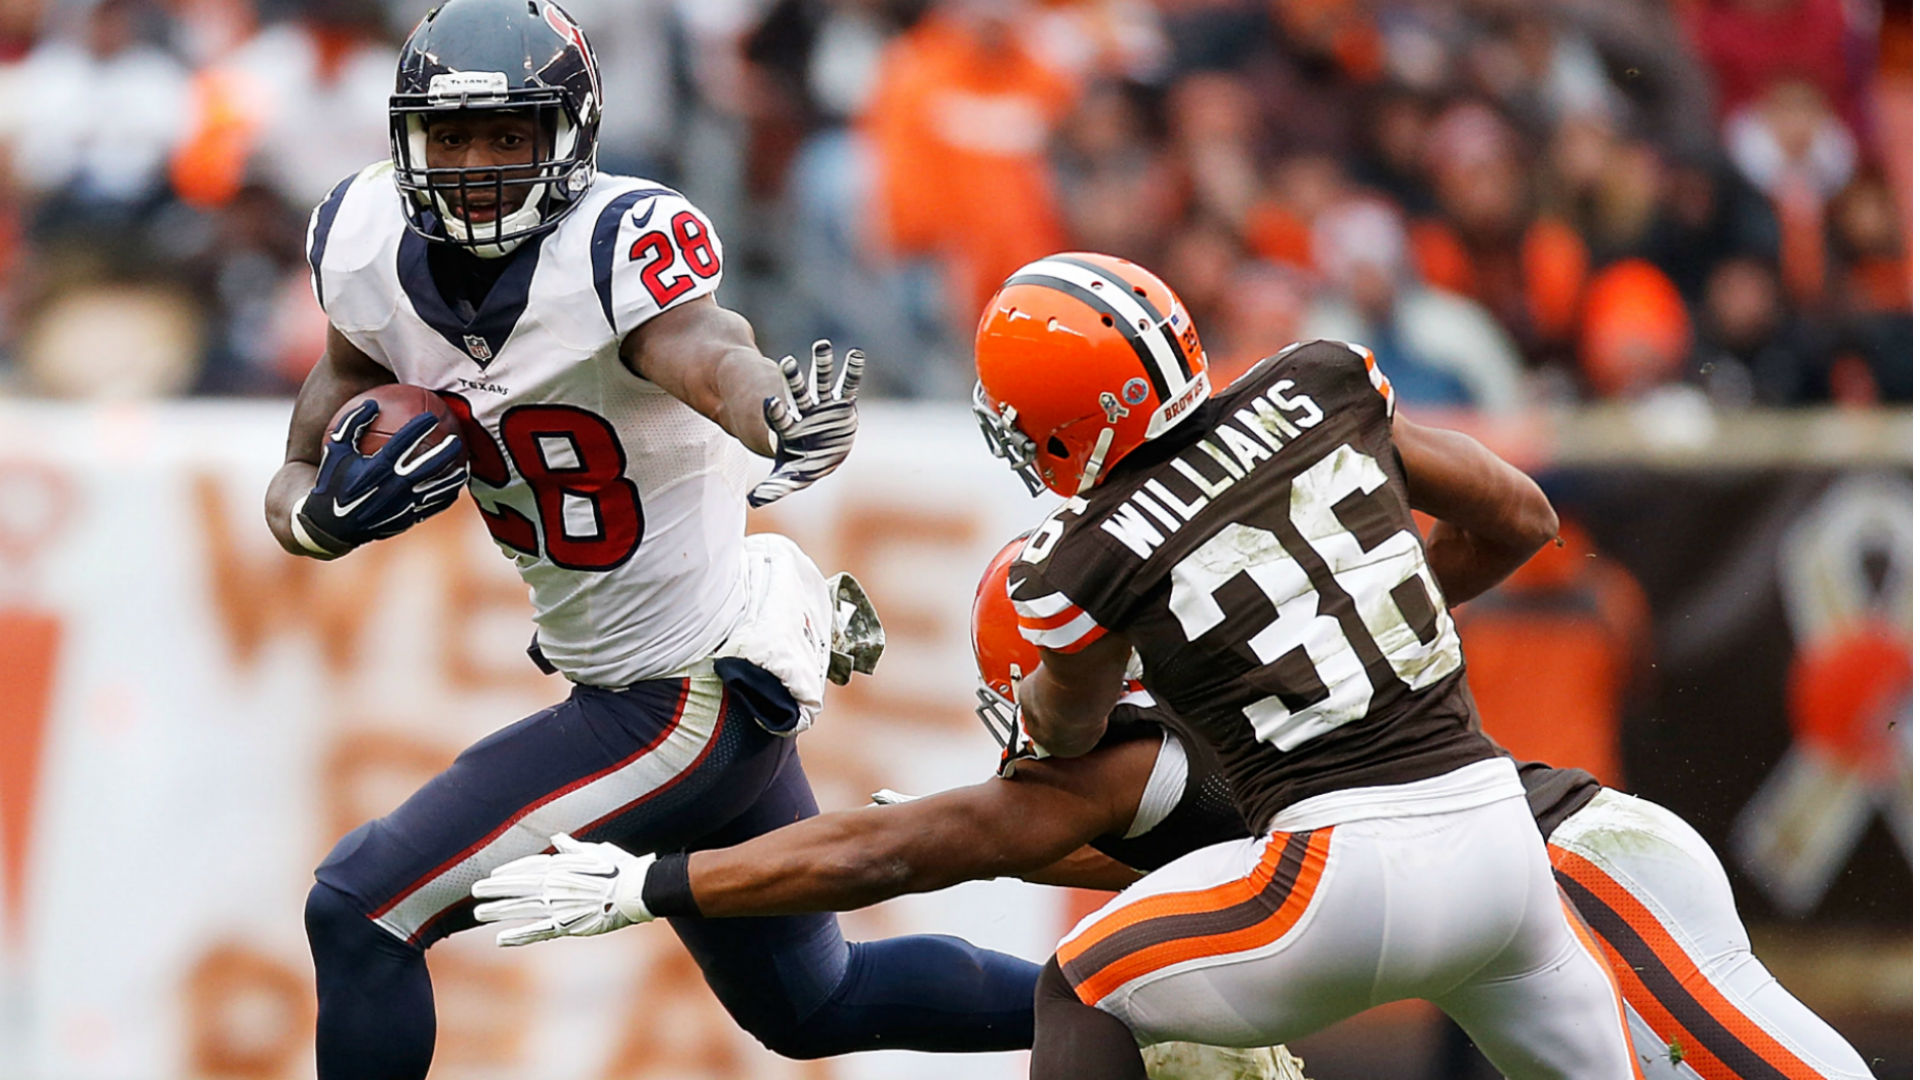 Bengals texans betting preview marglyph too many items 1-3 2-4 betting system